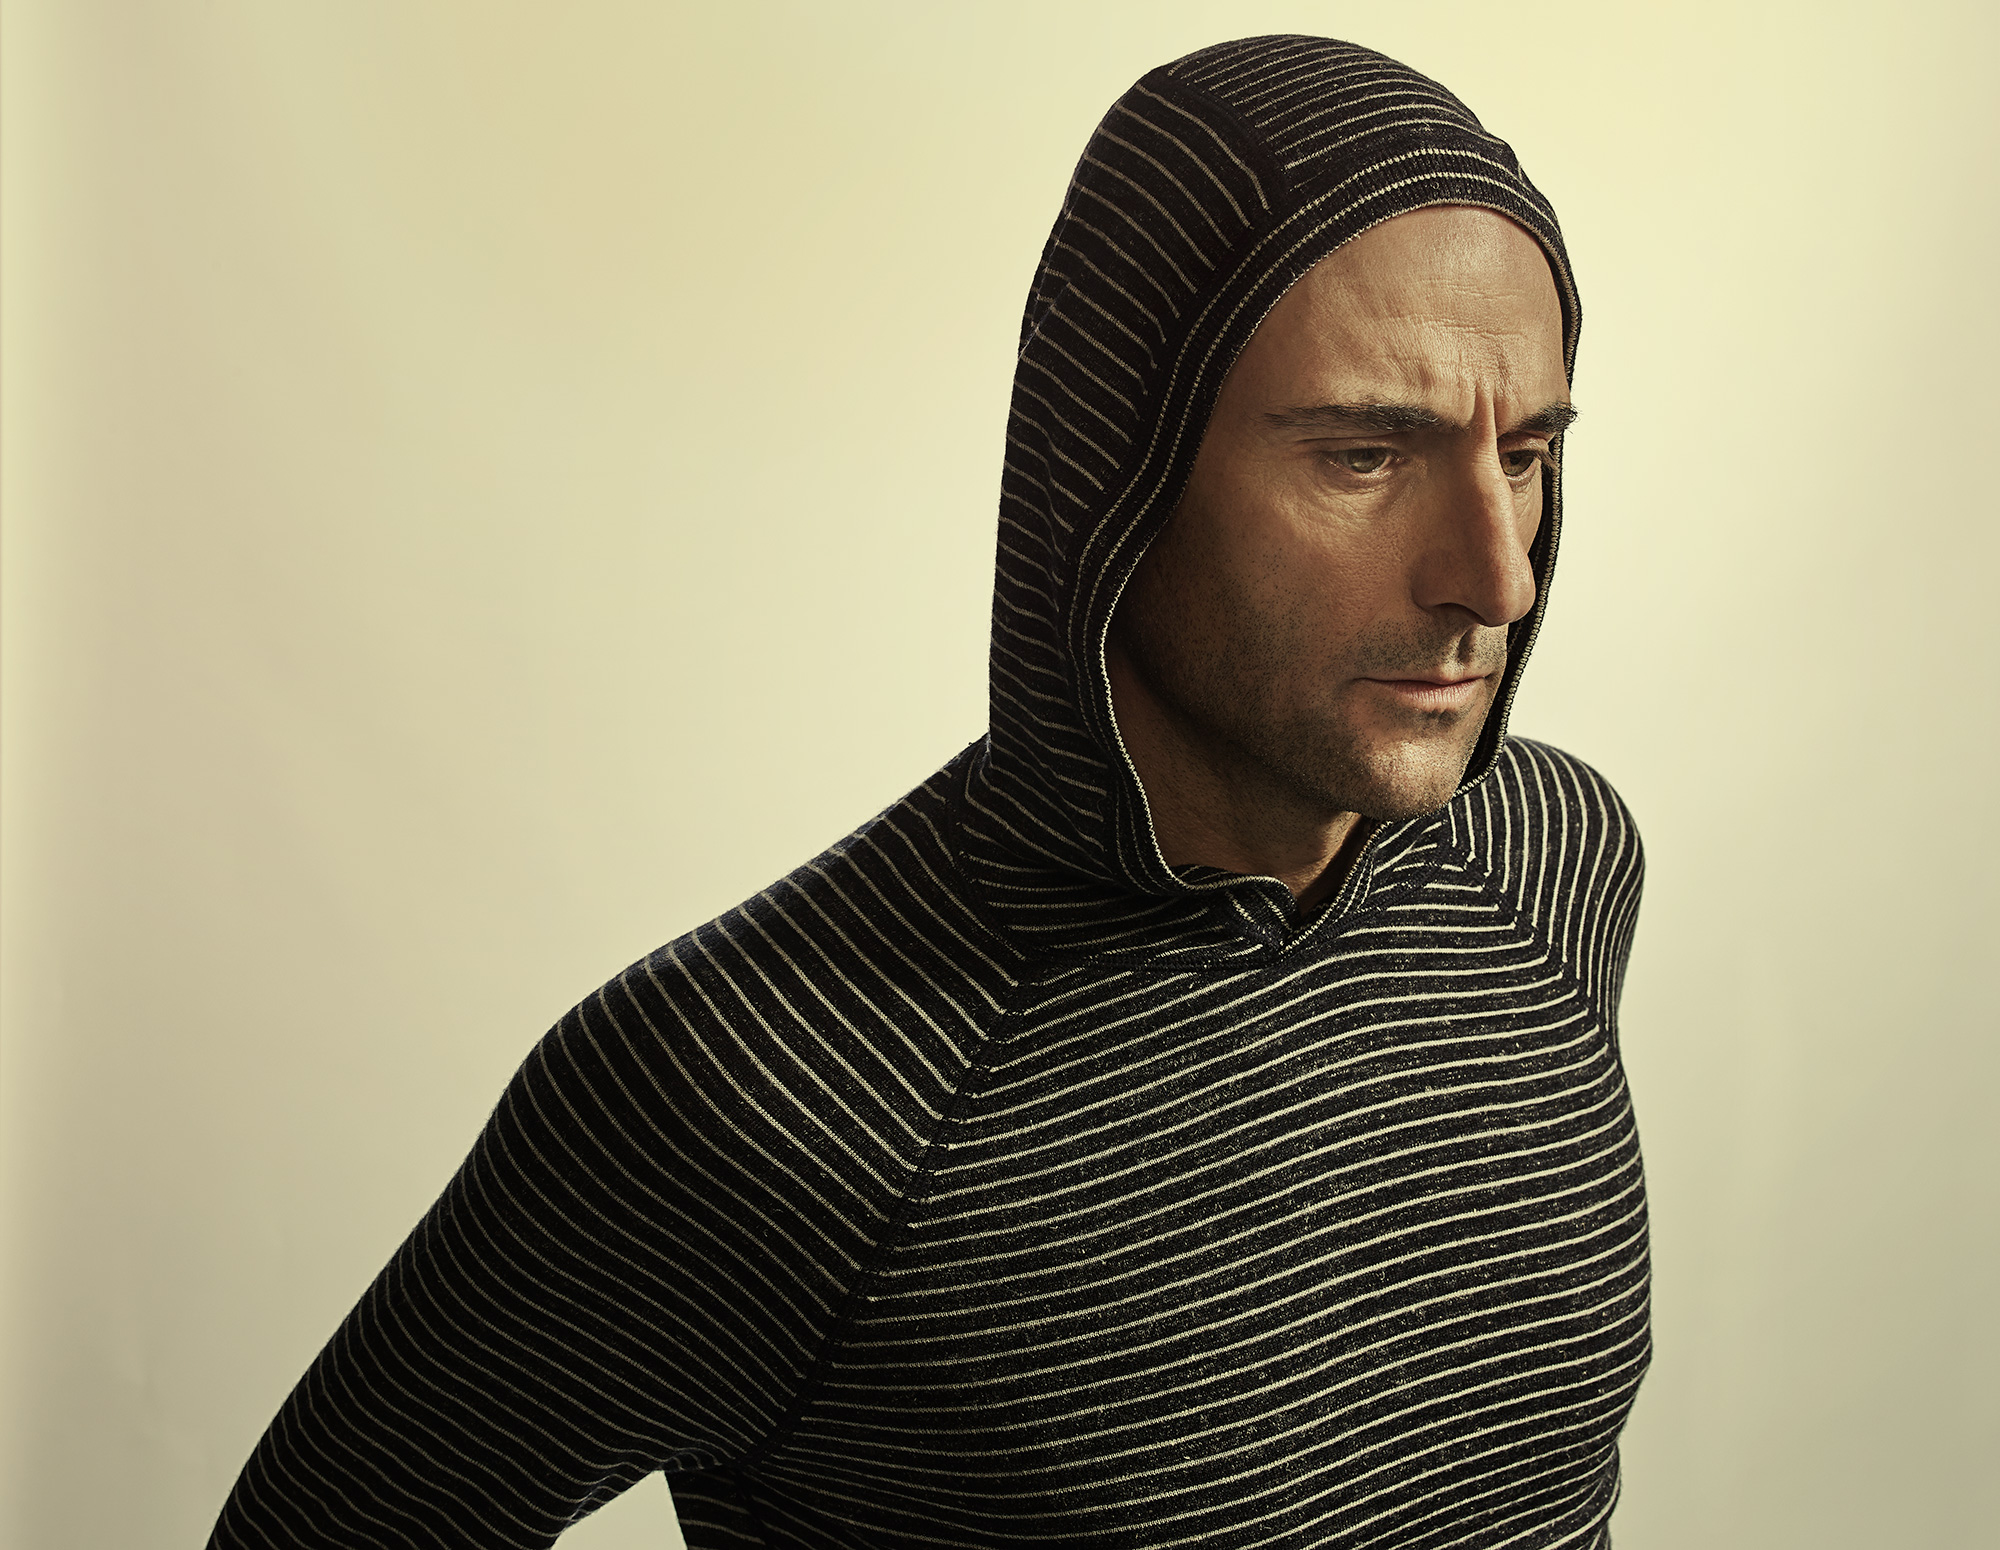 MArk-Strong-by-Robert-Ascroft-portrait.jpg